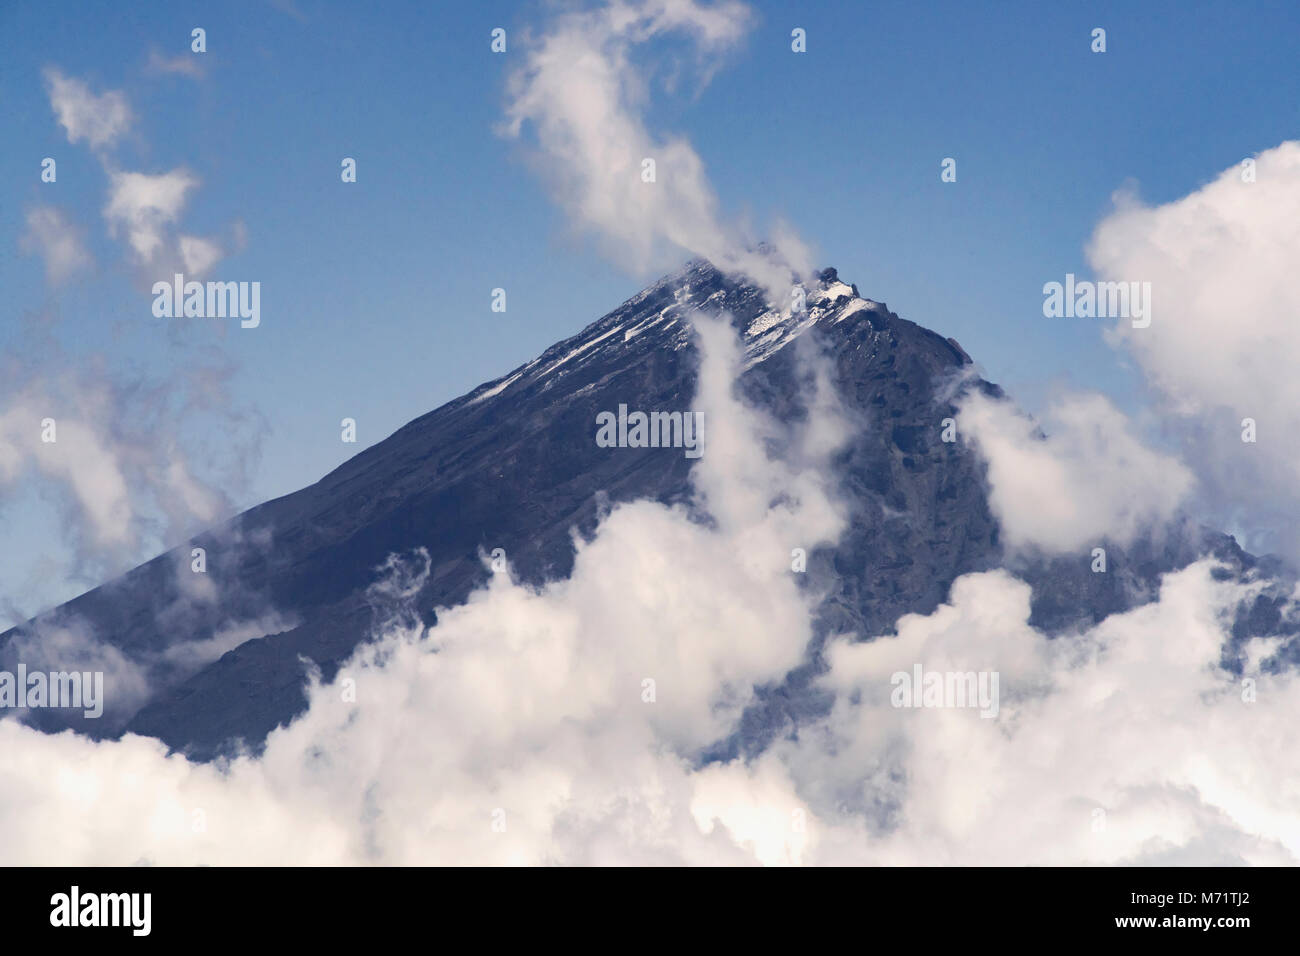 Snow on Mount Meru in winter, 5th highest in Africa, dormant stratovolcano, 4,562 M  (14,968 ft), Tanzania, East - Stock Image